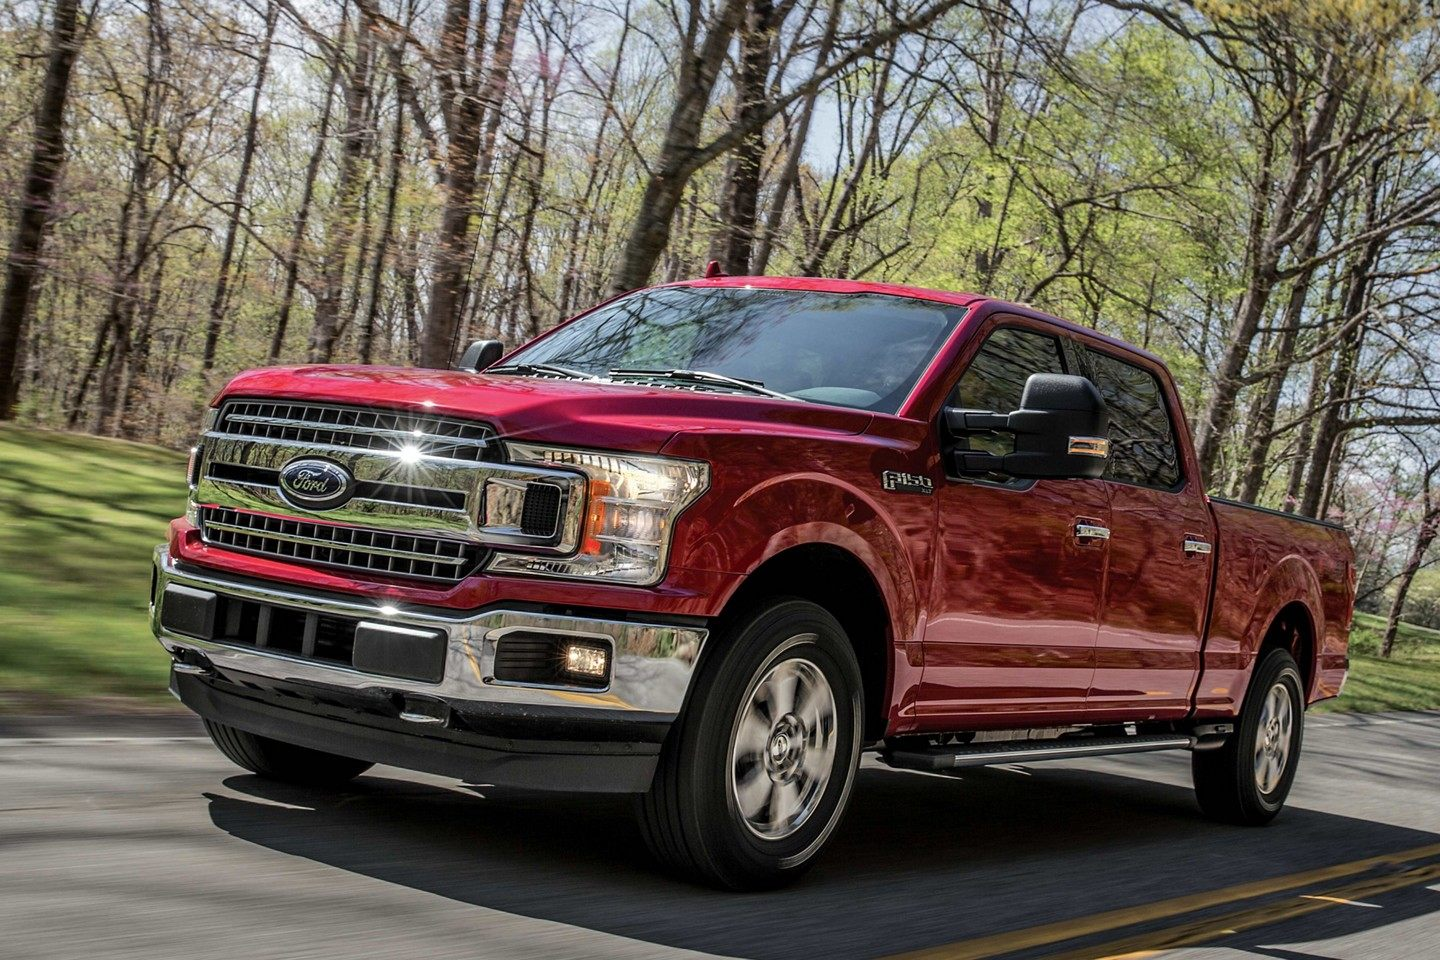 2019 Ford F-150 for Sale near Mesquite, TX